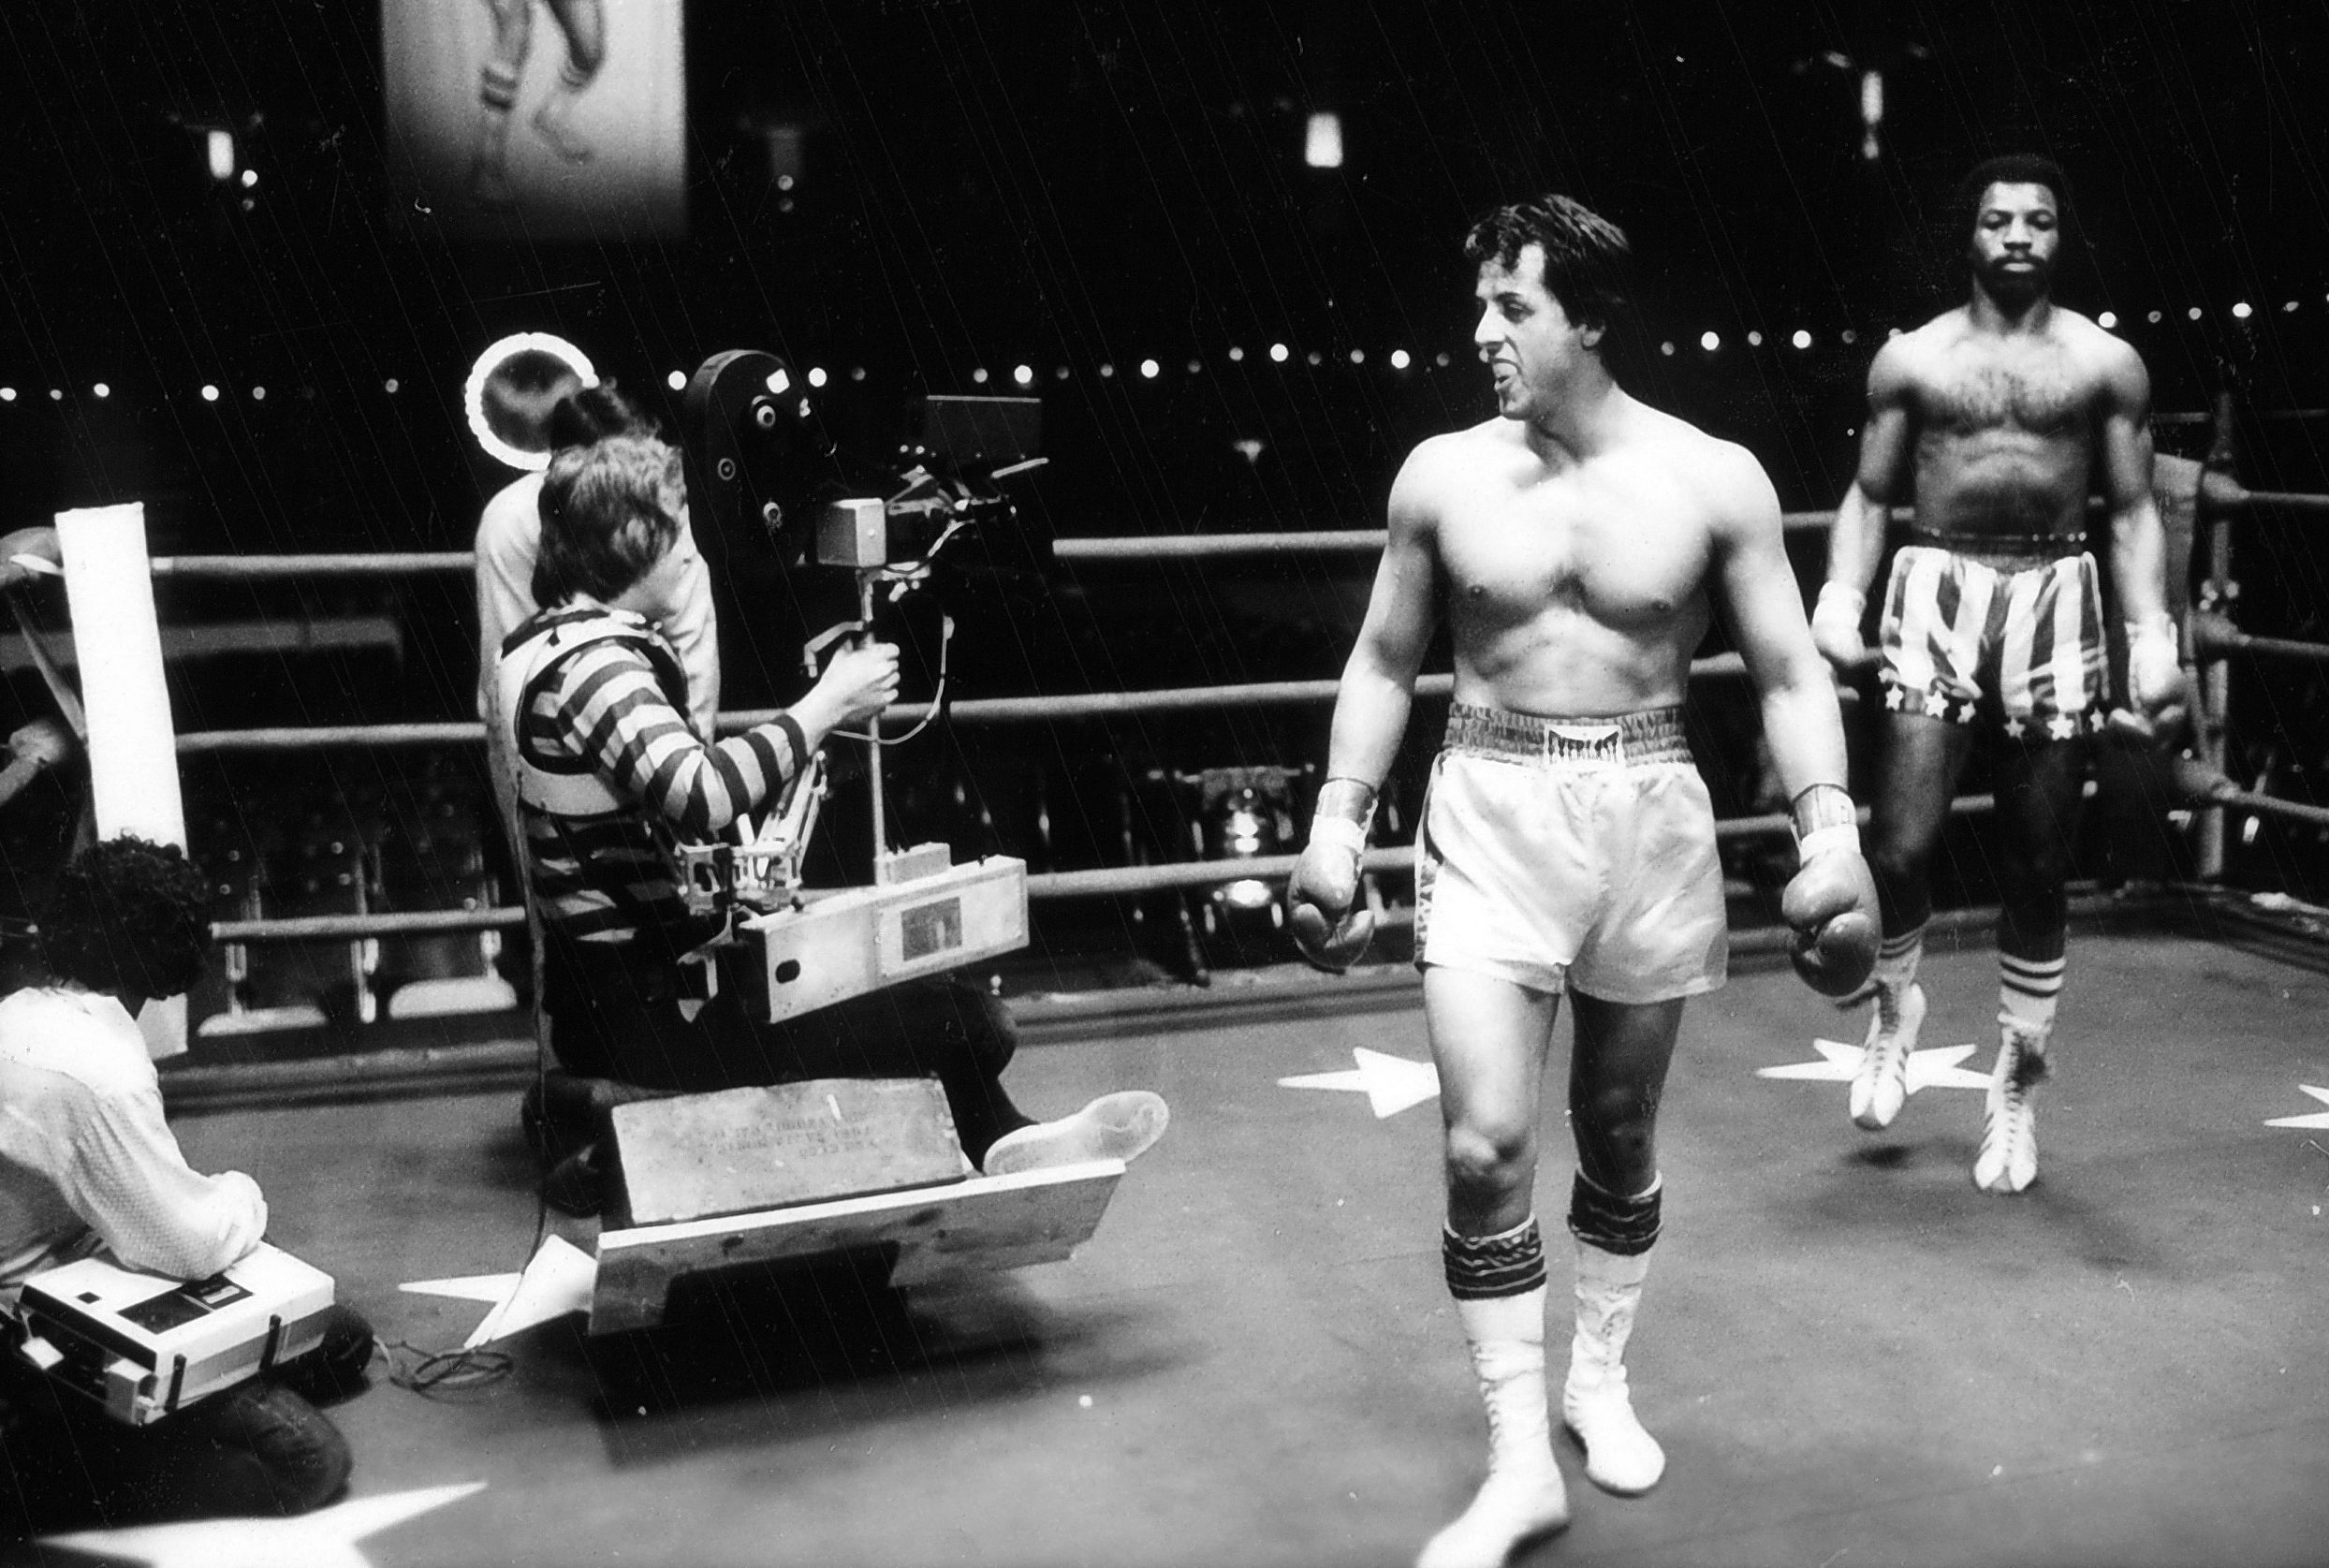 photo tournage coulisse cinema Rocky2 15 Photos sur des tournages de films #2  photo featured cinema 2 bonus